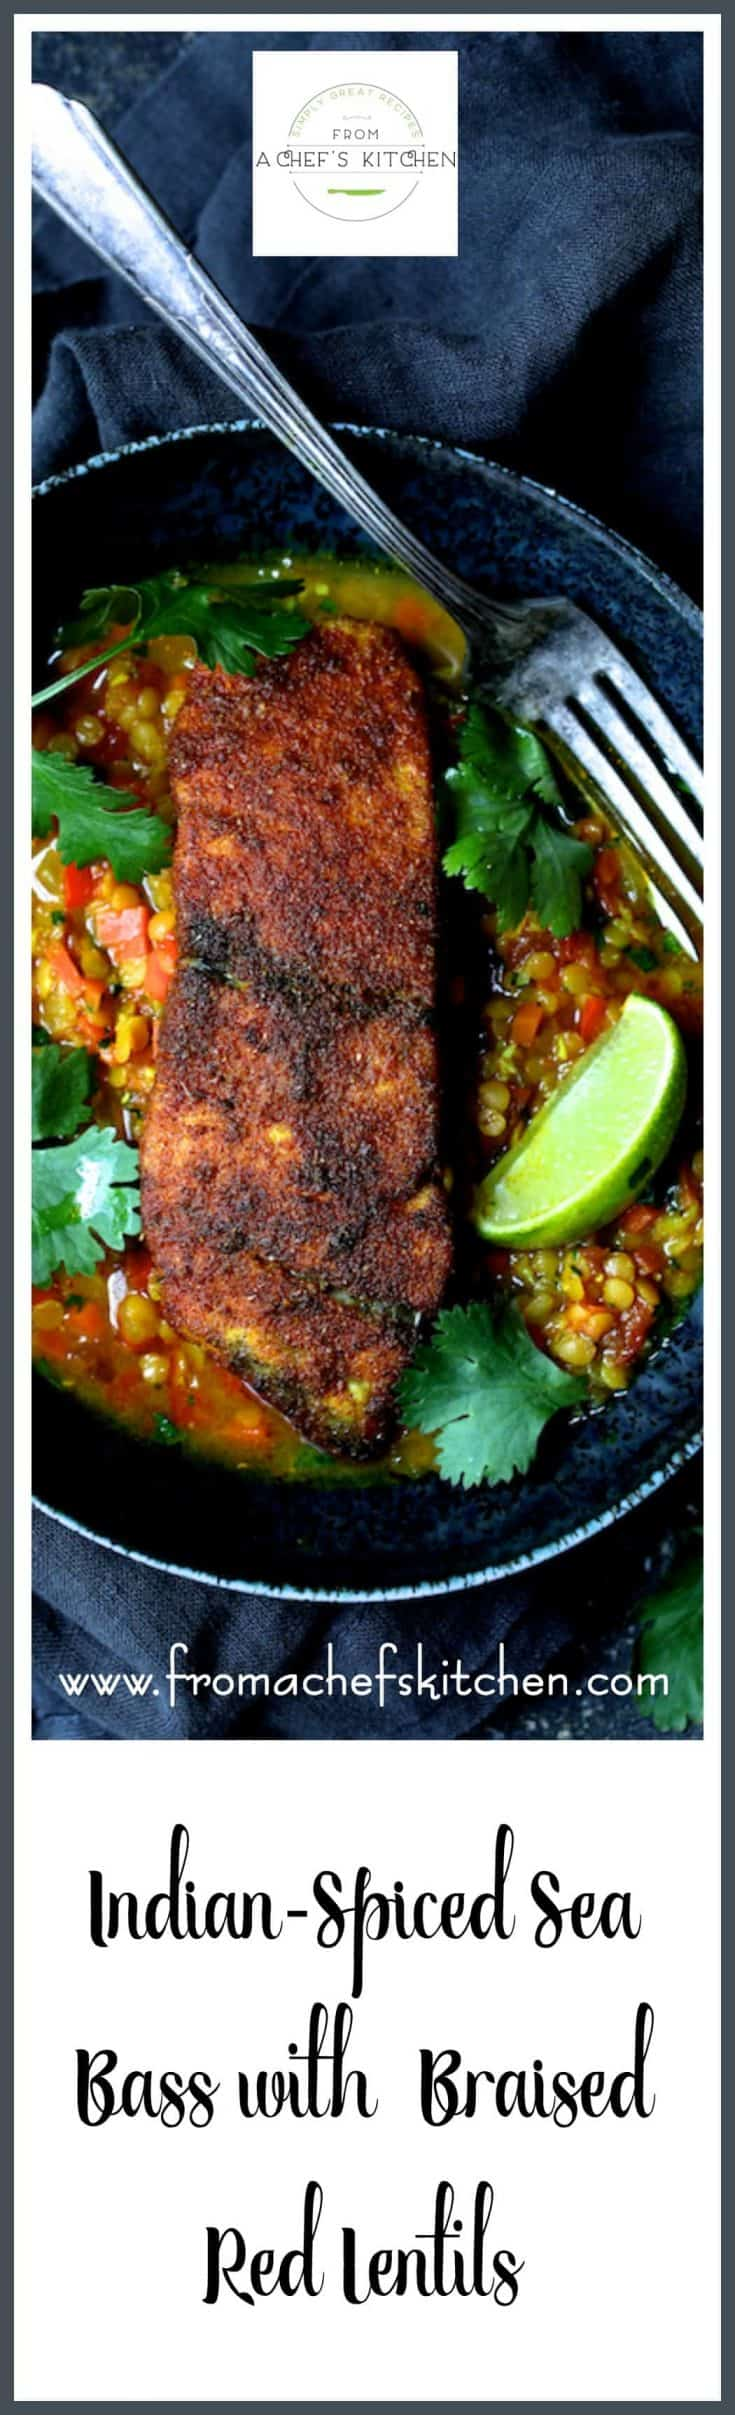 Indian Spiced Sea Bass with Braised Red Lentils is a healthful way to spice up a winter night! #indianfood #seabass #fish #lentils #redlentils